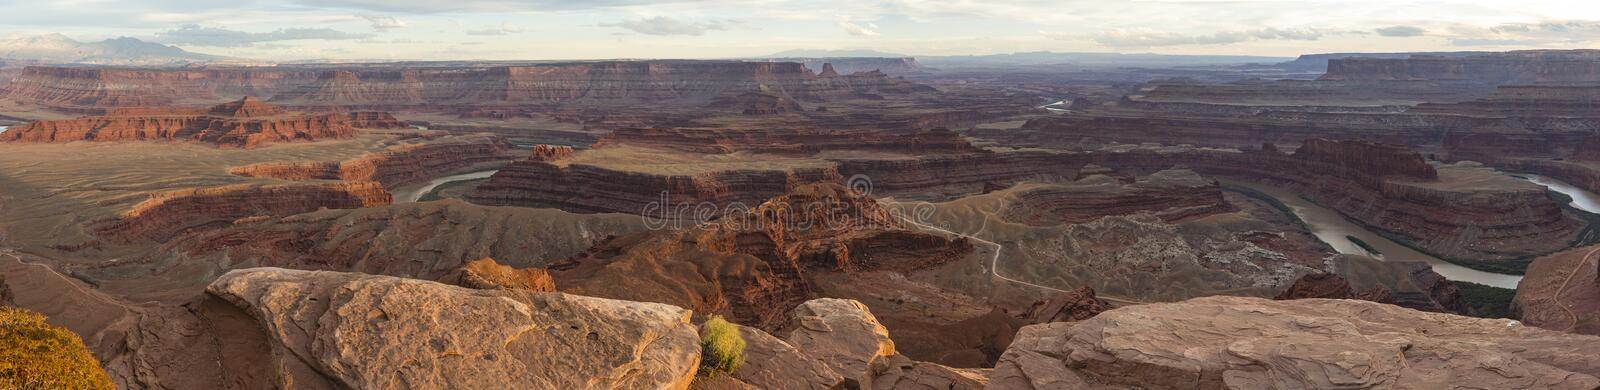 Colorado River Panorama from Dead Horse Point. Panoramic view of the Colorado River from Dead Horse Point State Park in Utah, just before sunset stock photo